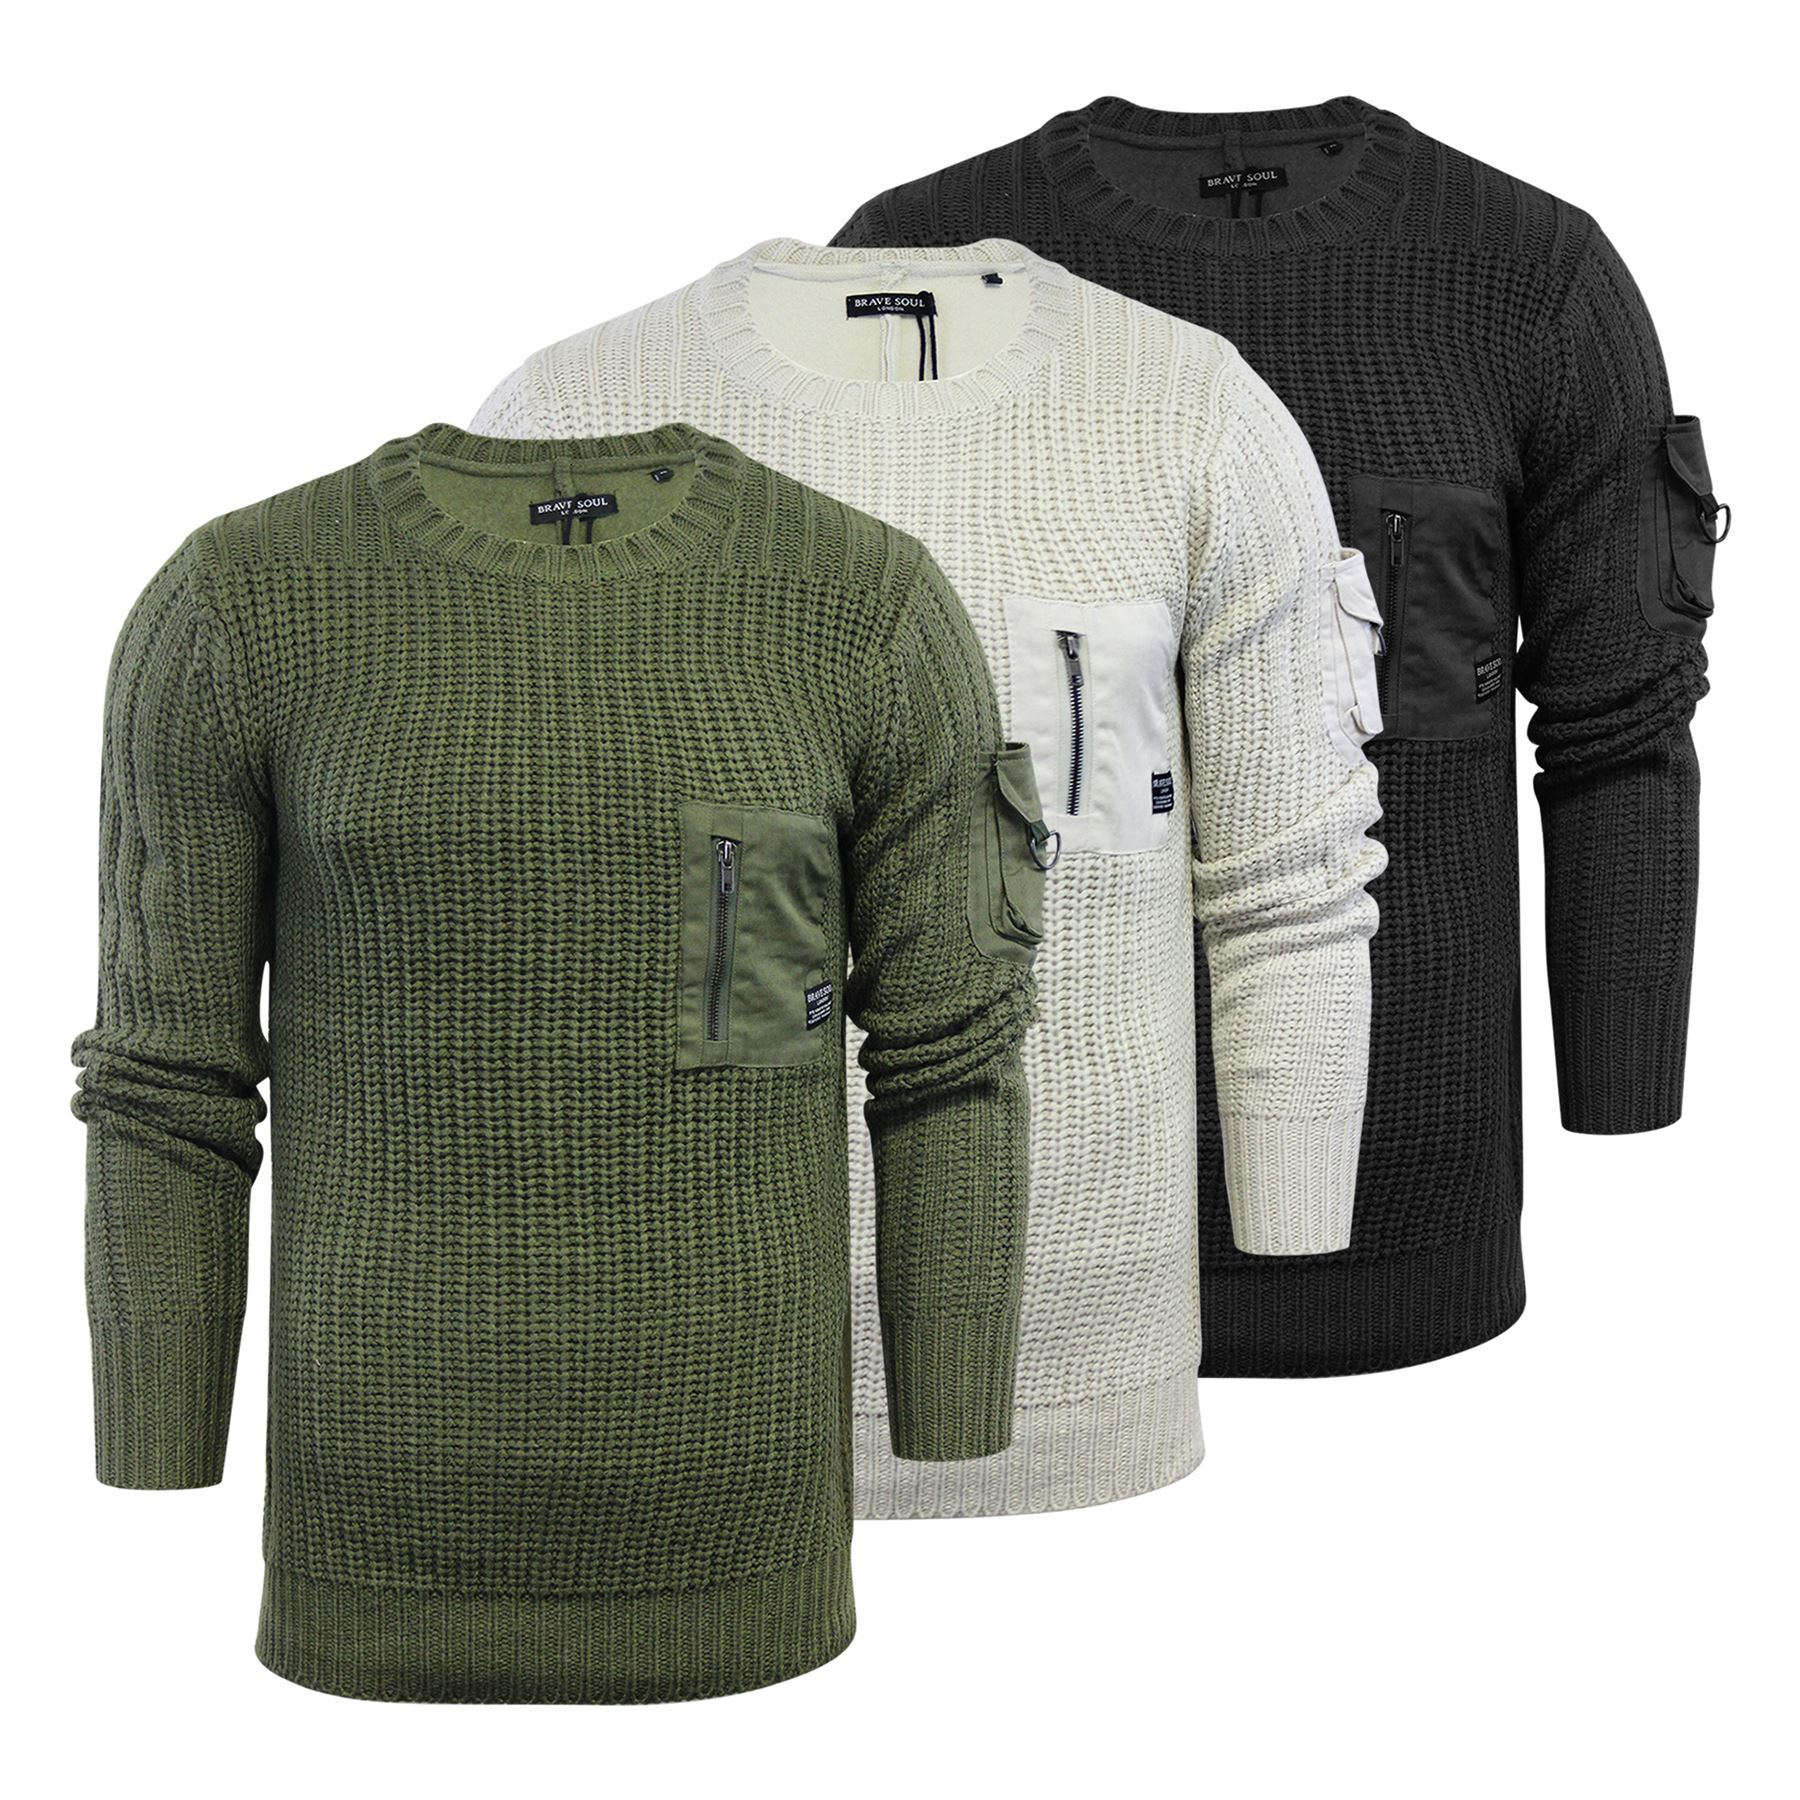 74906368238 Details about Brave Soul Leviticus Mens Jumper Longline Military Style Crew  Neck Sweater